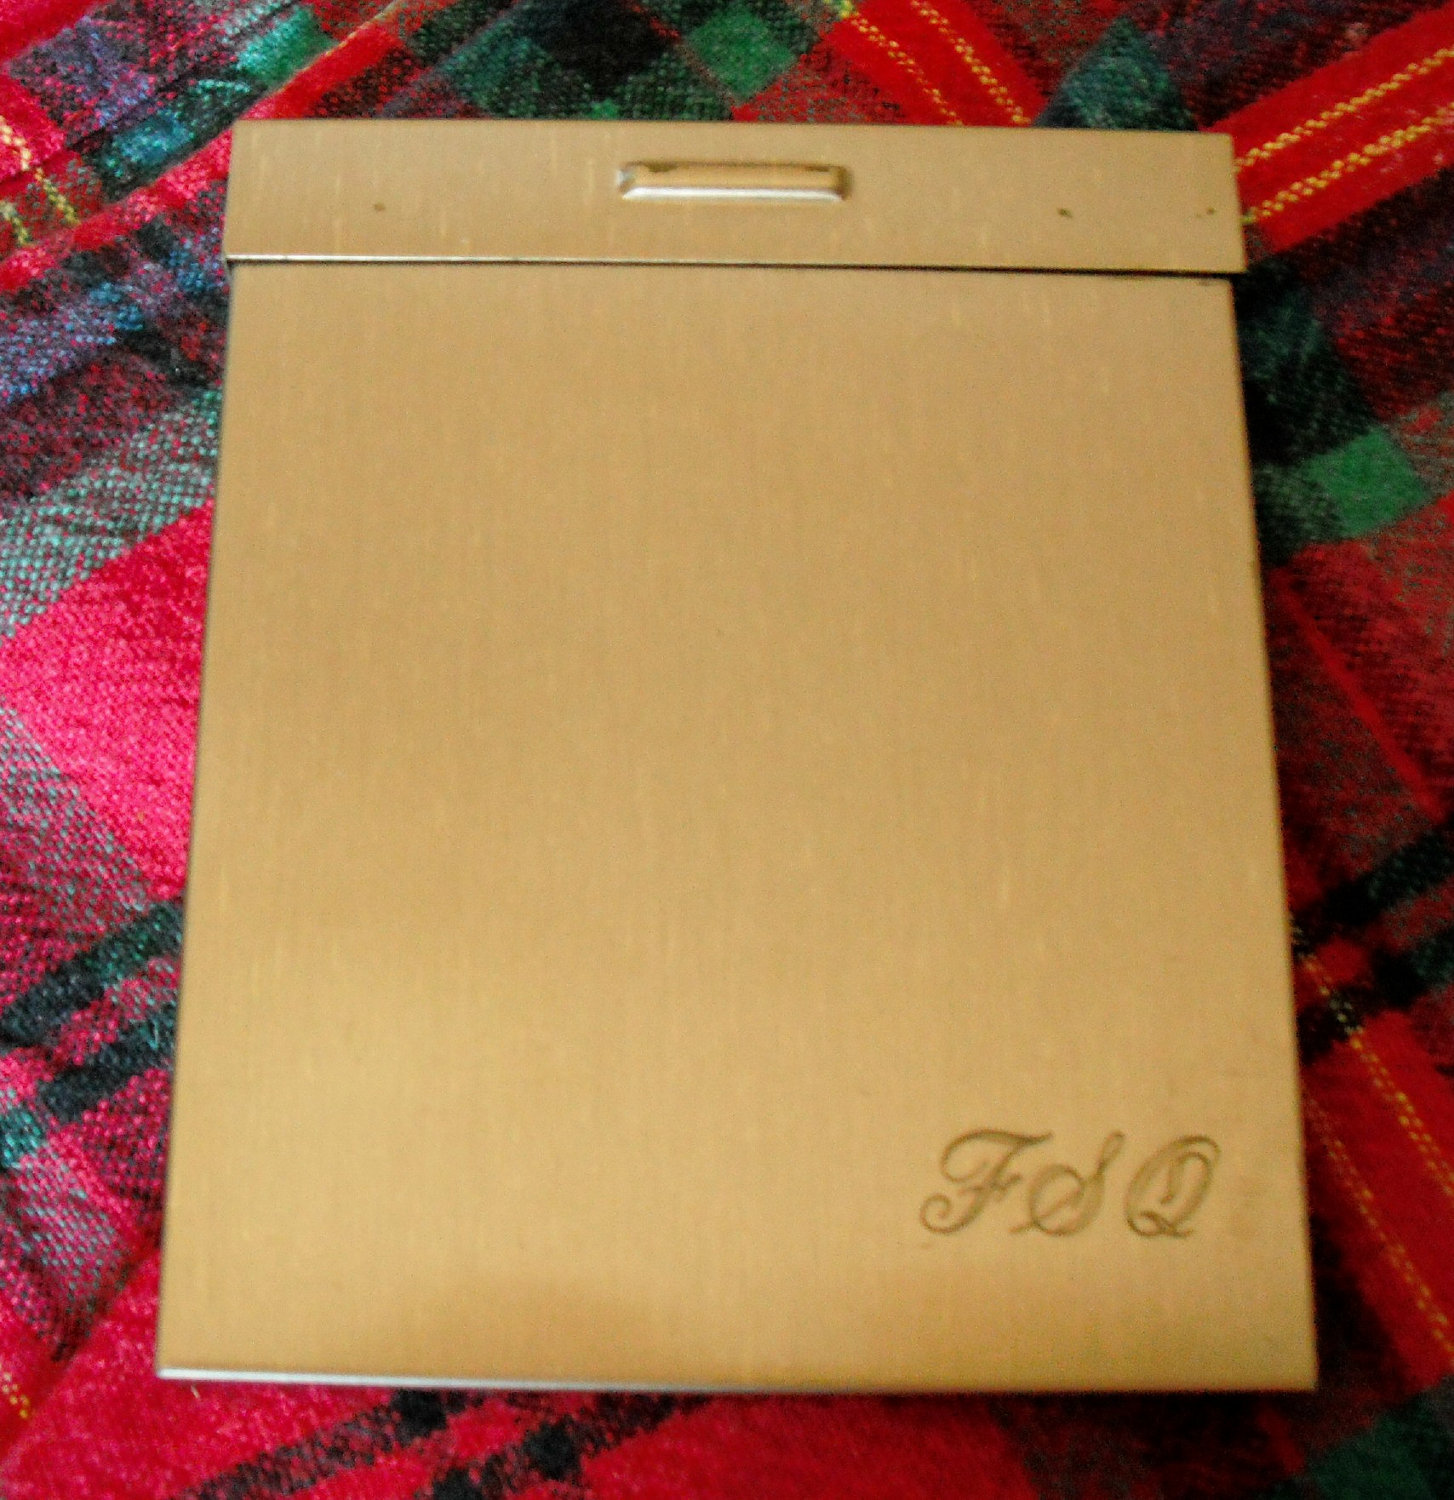 CIGARETTE CASE - Vintage Brushtone Brass - MONOGRAMMED Accessory for Men or Wome